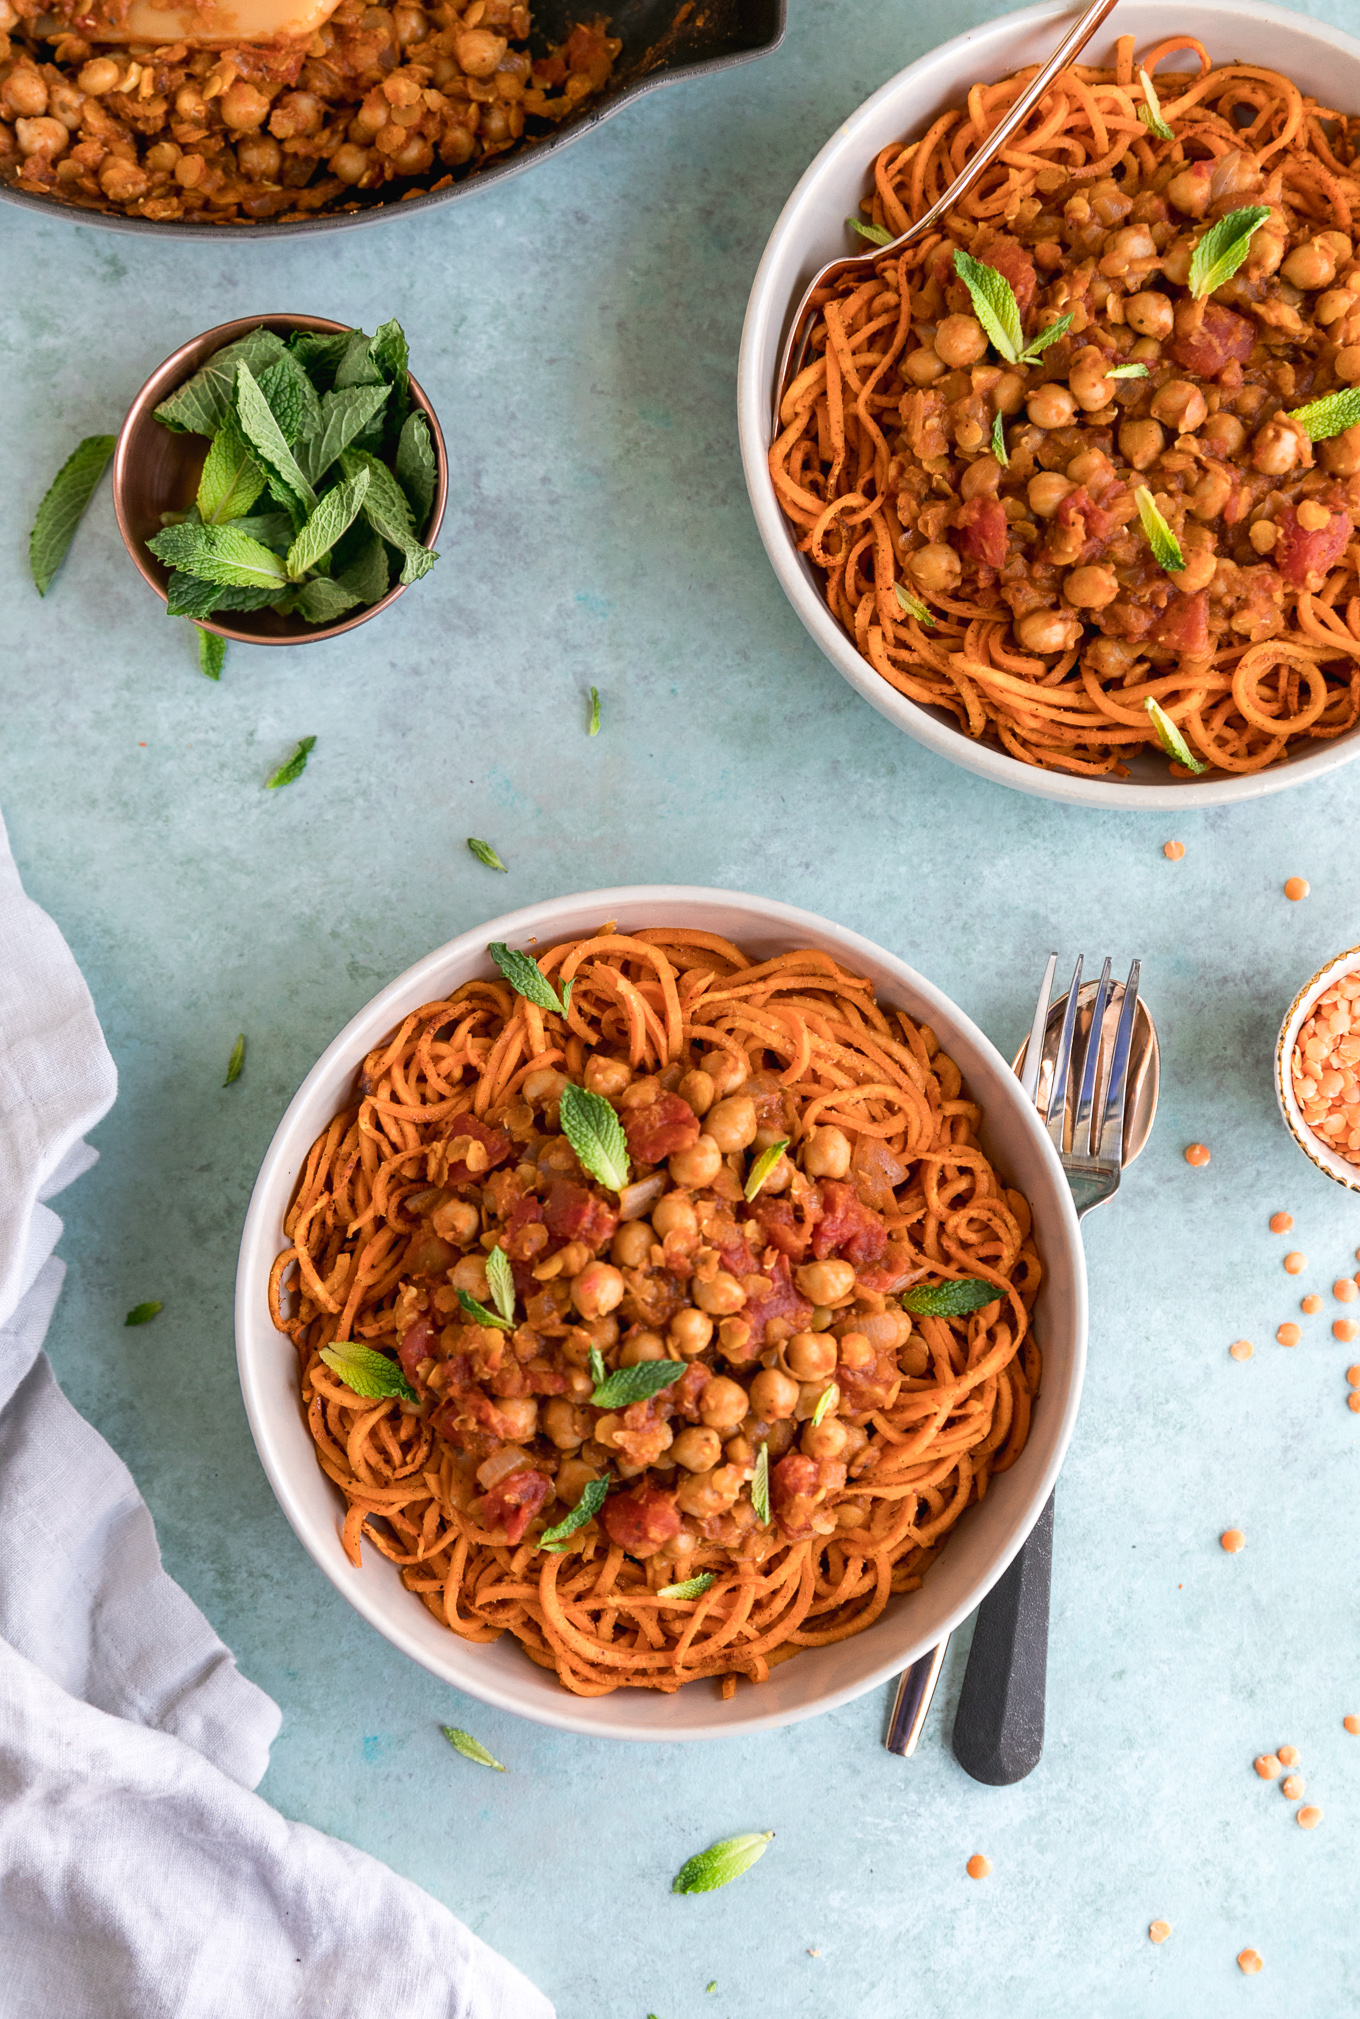 Overhead shot of two bowls of sweet potato noodles with a small bowl of mint leaves and dry lentils, and a fork and spoon stacked on top of each other